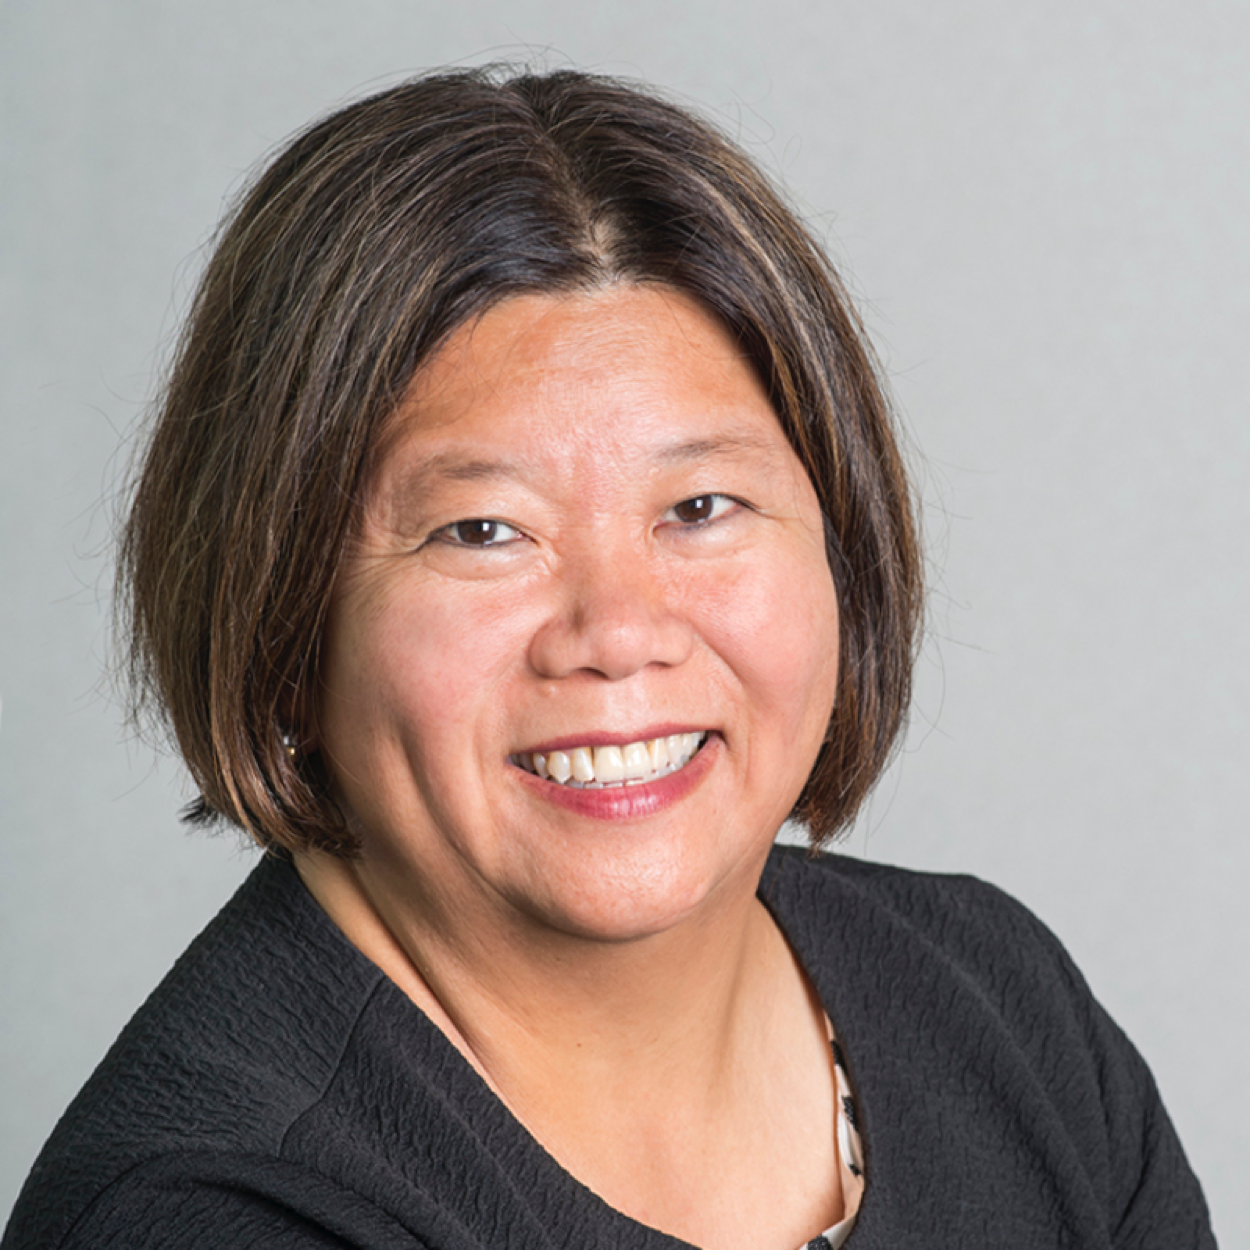 Sony Bae - Lead Program / Project ManagerSony specializes in tenacious and strategic program and project management. She has over 20 years of experience in delivering projects of increasing complexity and diversity. She possesses a thorough knowledge of all aspects of facility construction project management from programming to occupancy. Culturally sensitive, Sony has demonstrated success with a variety of stakeholders, from BC Hydro to the Vancouver Olympics to BC Health Services.As Woldring & Associates' Lead Program / Project Manager, Sony actively acts as a sounding board, coach and mentor for WCA project managers who are in early stages in their career development.Along with Dick, Sony leads WCA's strategic planning and long term development.More about Sony BaeView CV | View LinkedIn profile